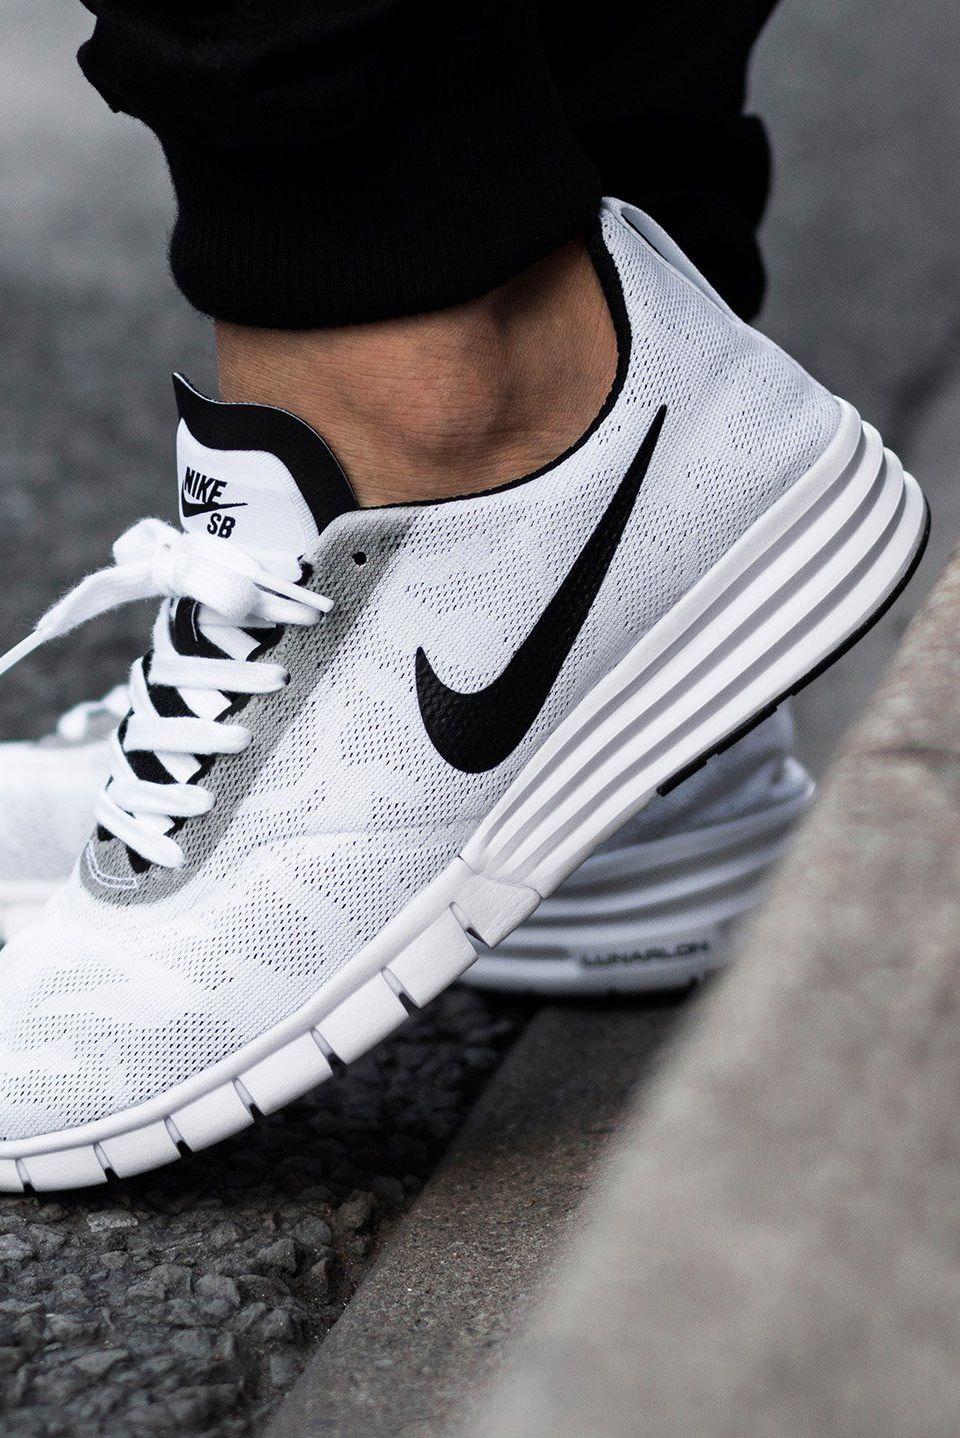 Nike SB Lunar Paul Rodriguez 9 | shoes in 2019 | Nike shoes